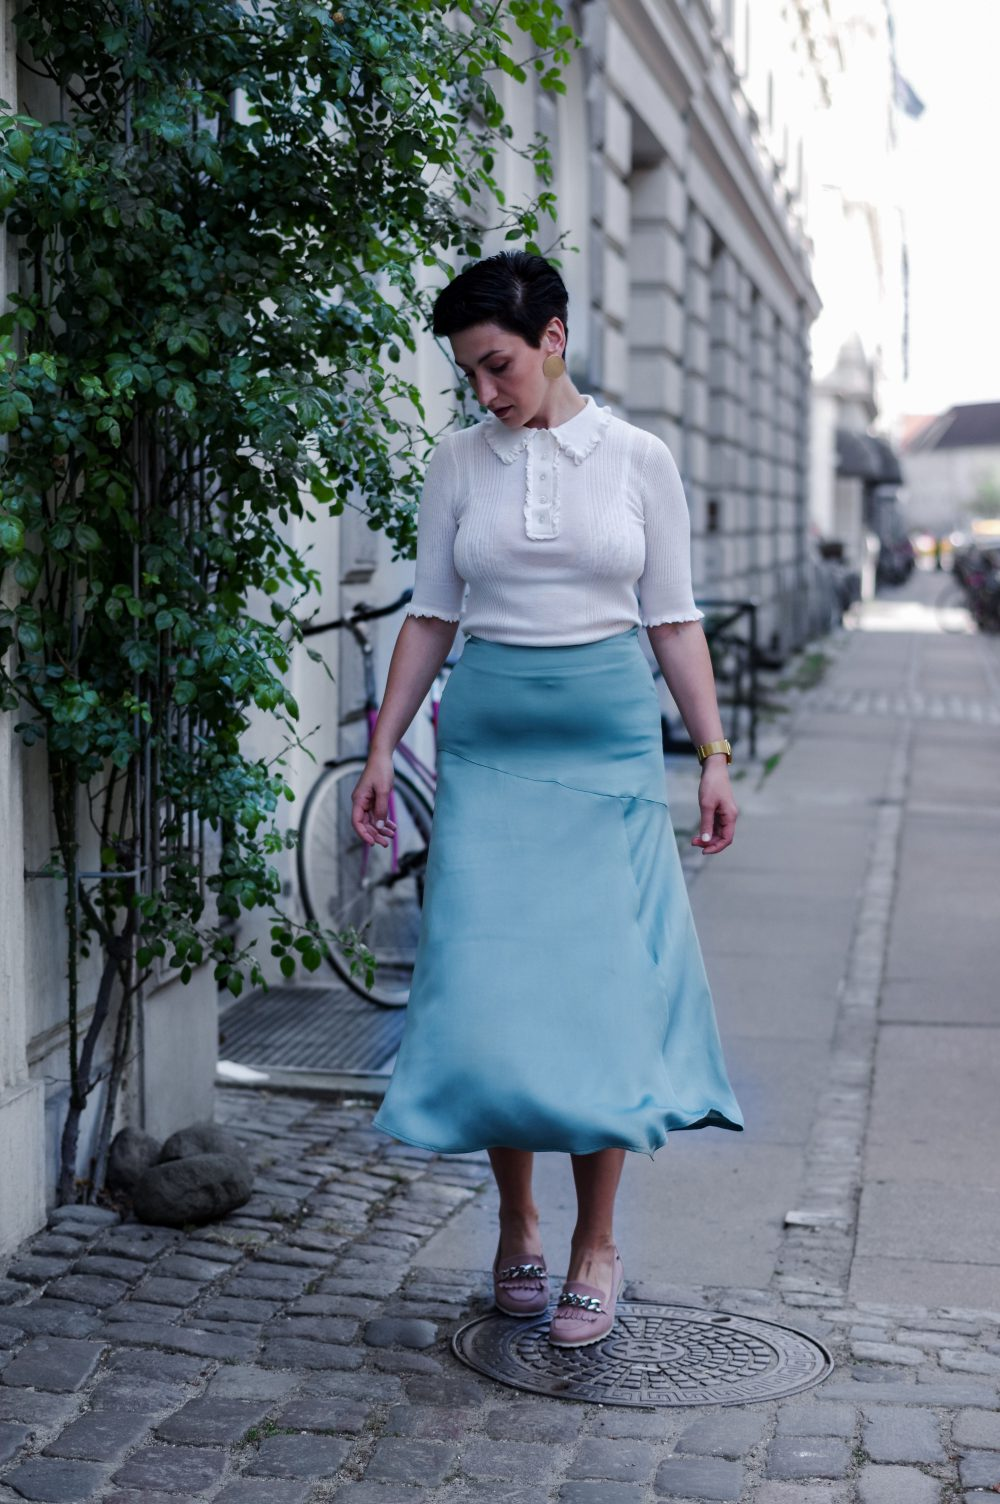 Casual-Spring-Summer-look-for-weekends-stylish-casual-look-spring-outfit-summer-outfit-ideas-maxi-skirt